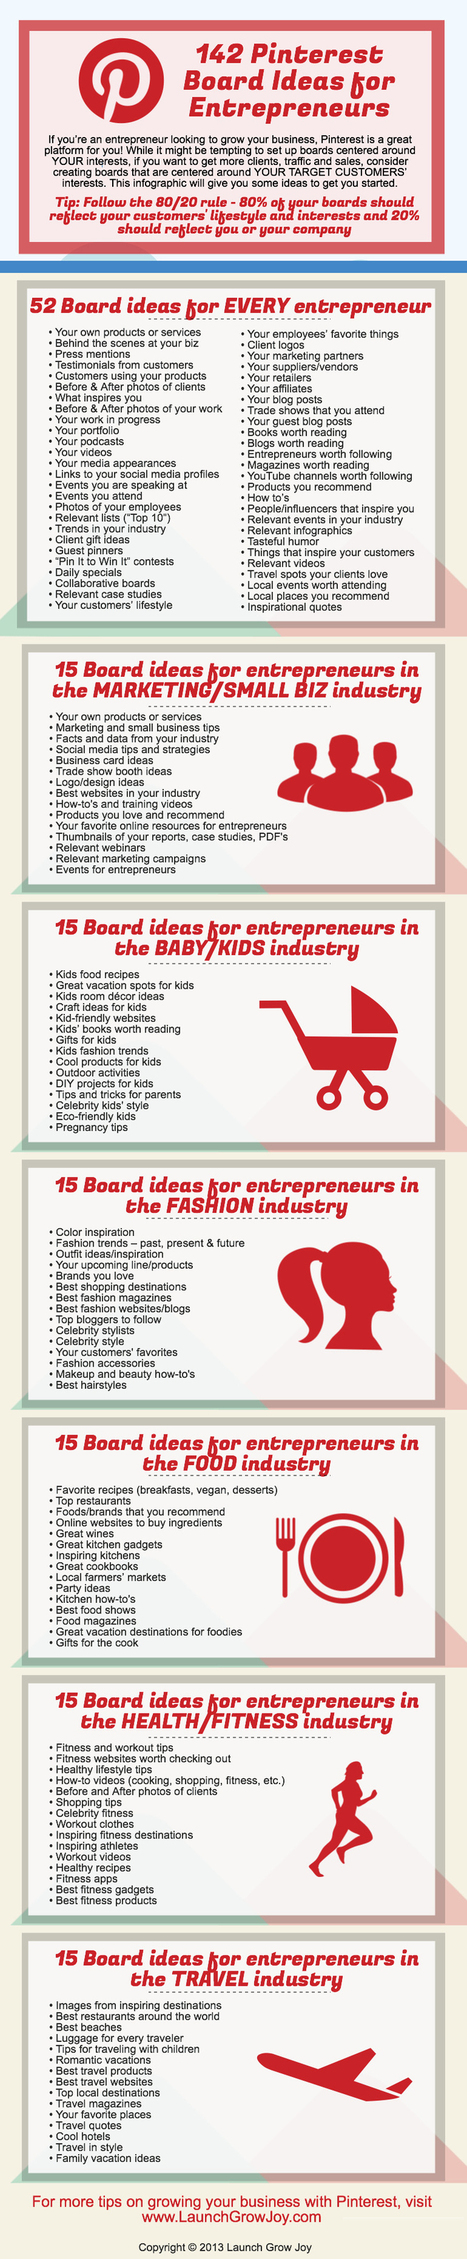 142 Pinterest Board Ideas for Entrepreneurs - Launch Grow Joy | Pinterest | Scoop.it